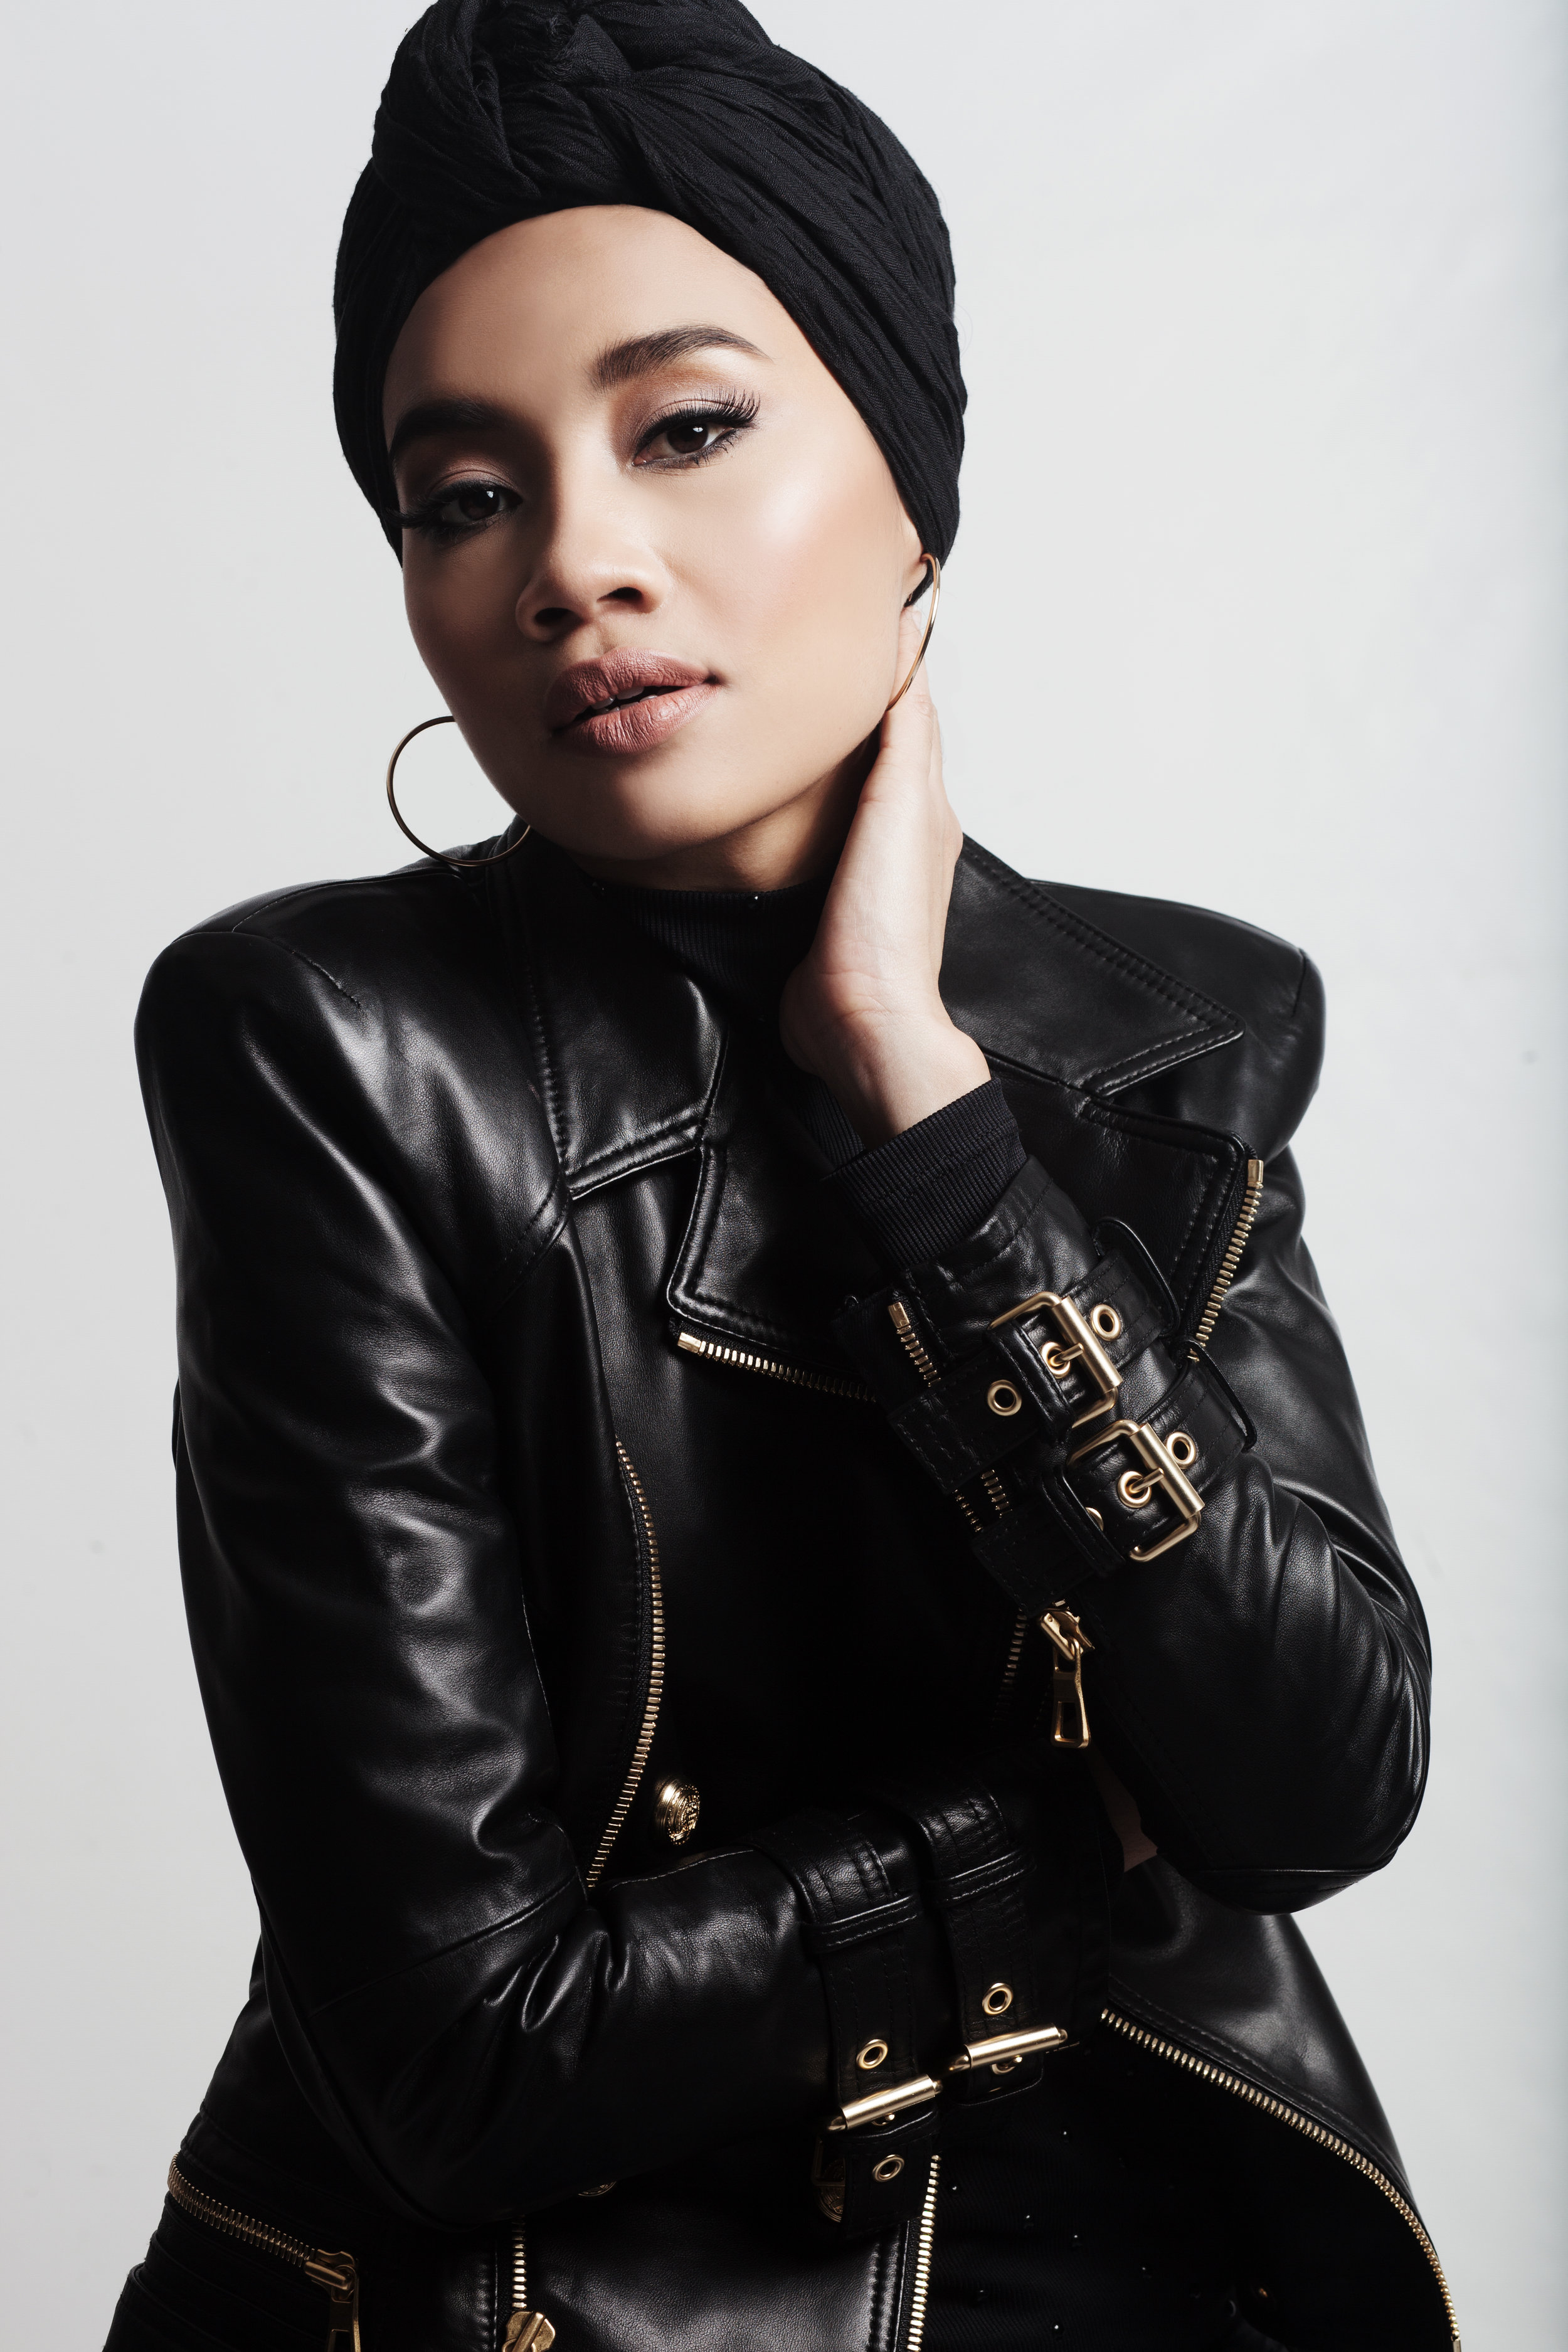 """YUNA - Yuna is used to transcending expectations - and she does so again with what Rolling Stone has hailed as one of the Best R&B albums of 2016. Chapters, released on Verve Music boasts her most confessional songwriting yet - combined with a surprising group of legendary creative collaborators, including Usher and DJ Premier the album is retro-futuristic urban groove that's all new, and all her. """"It's not just a collection of songs, but a body of work"""" Yuna explains. """"It's unlike anything I've ever done before.""""An early buzz on social media attracted the attention of US management company Indie-Pop, who quickly helped turn her from a law student playing in coffee shops into an award winning household-name. """"Live Your Life"""", an uplifting yet haunting Pharrell-produced hit crossed her into a mainstream market and she hasn't looked back."""